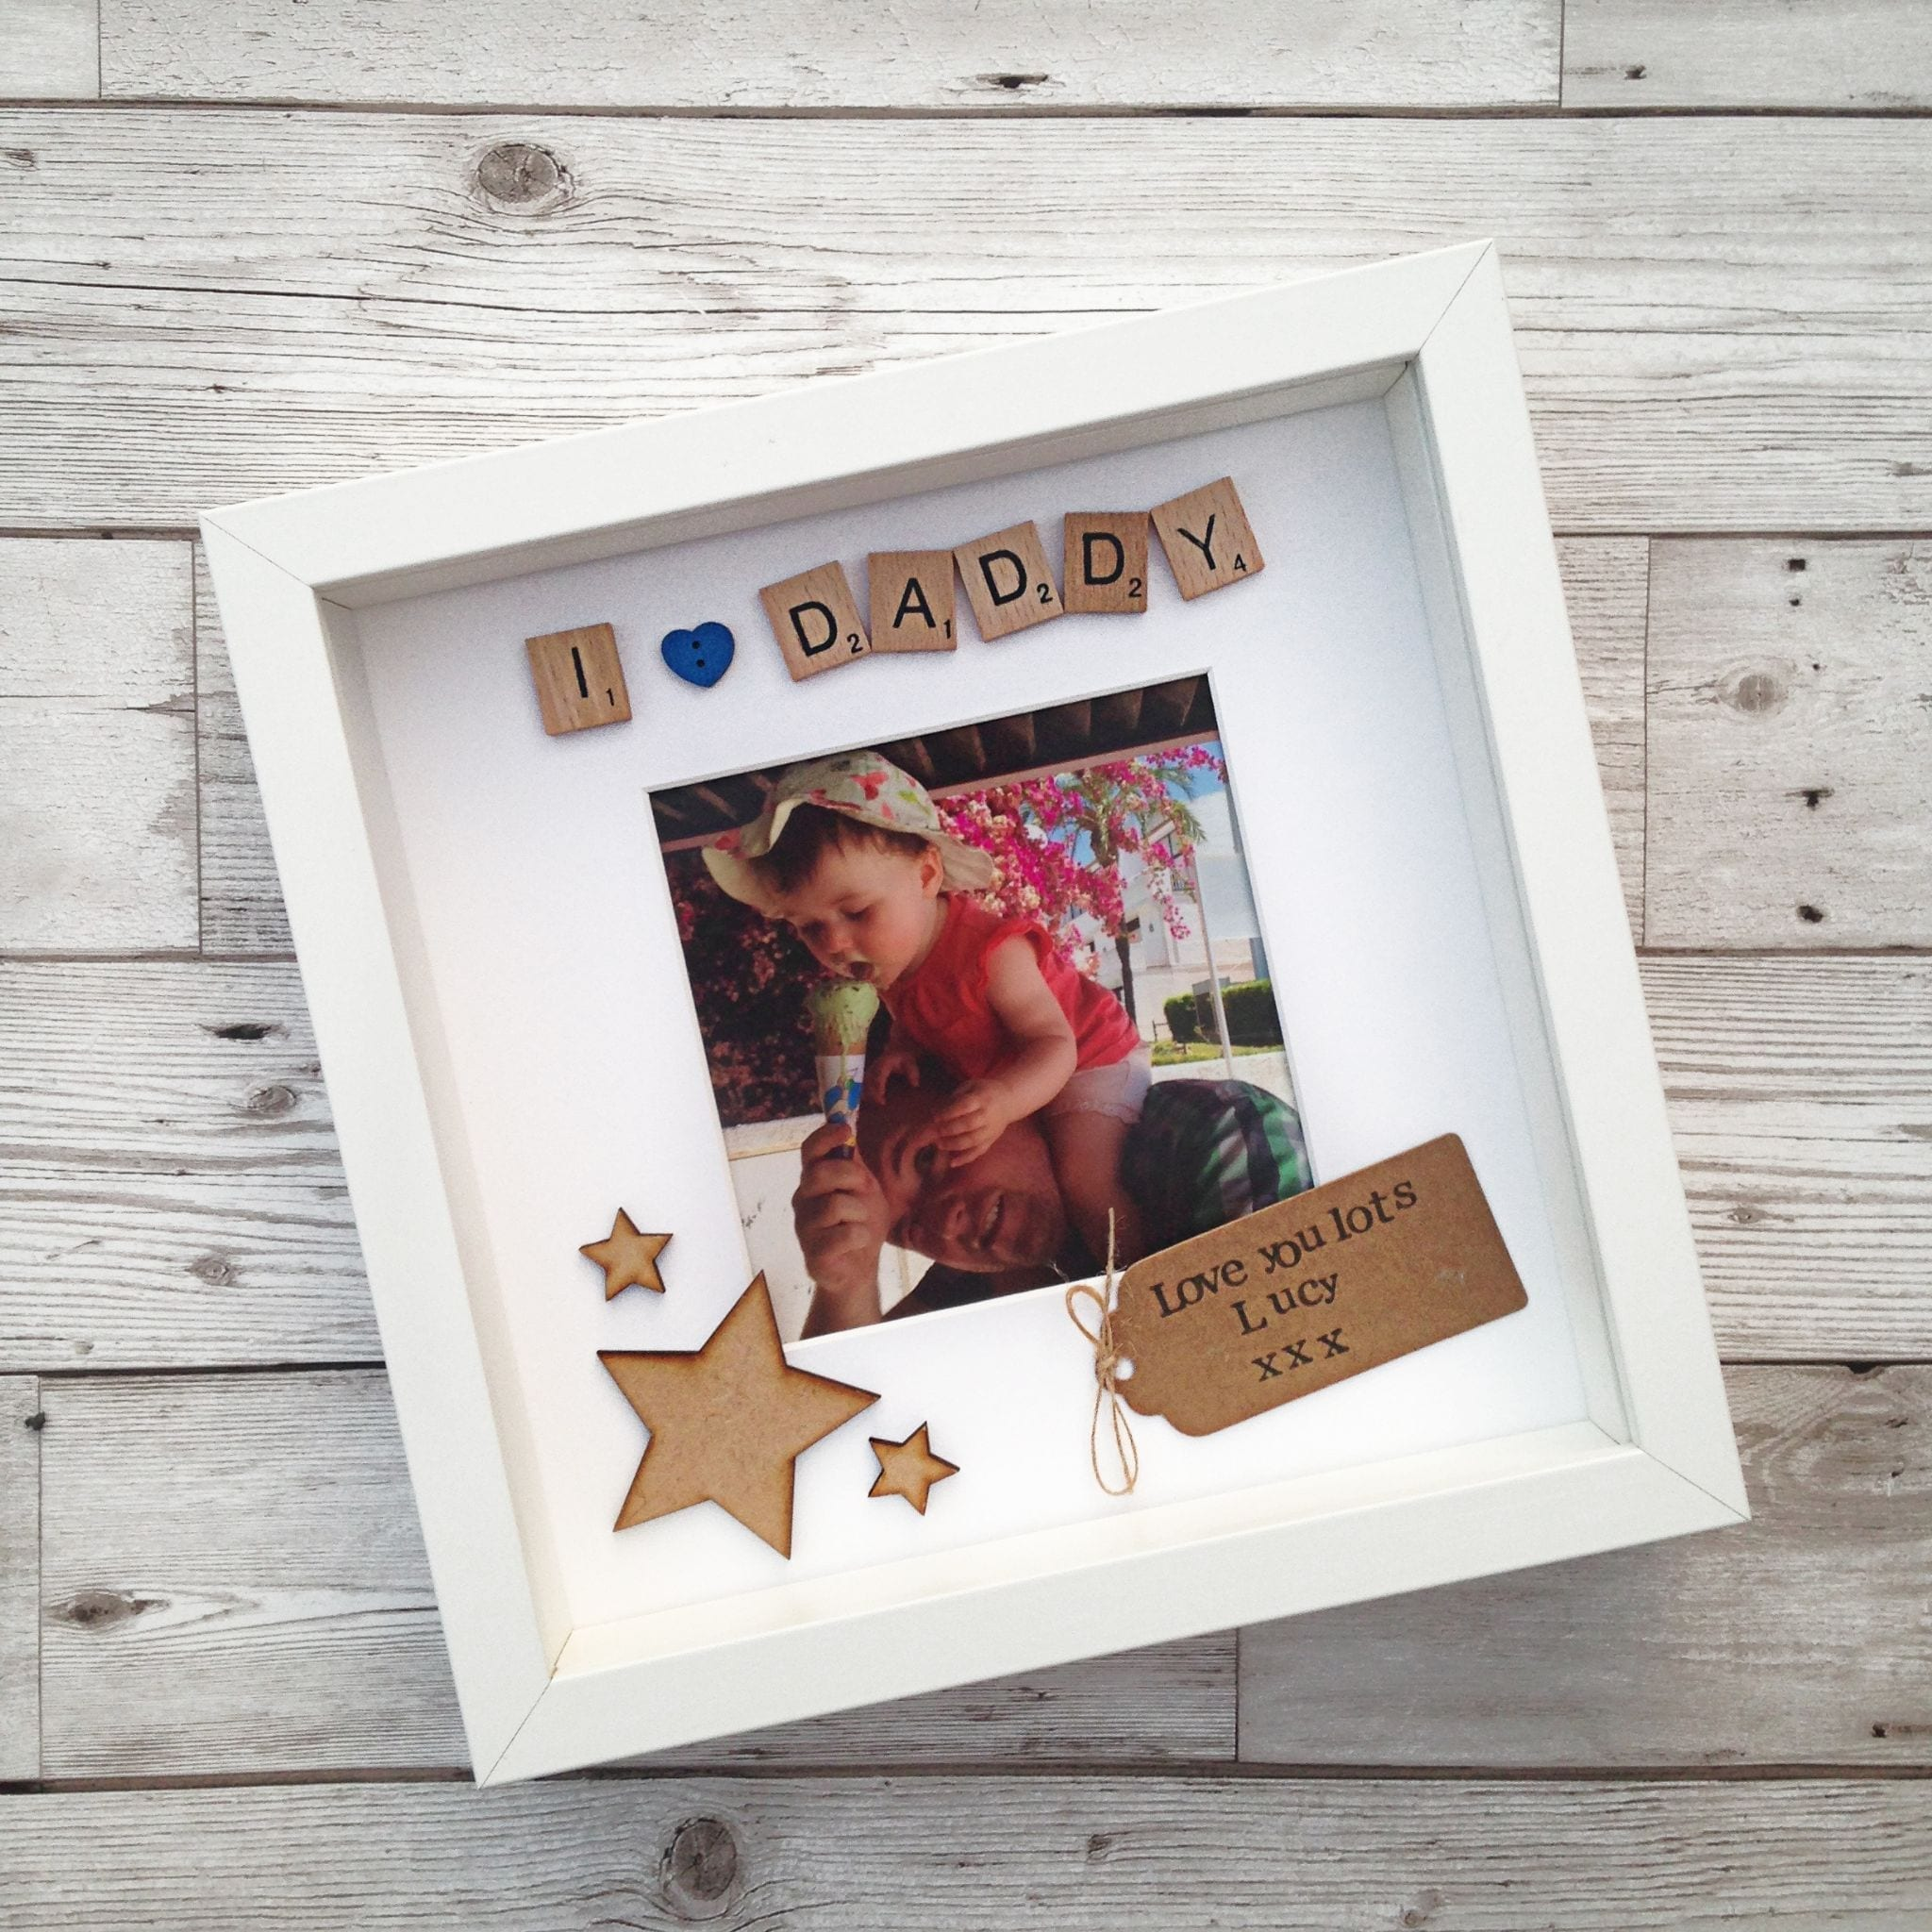 I Love Heart Daddy Personalised Scrabble Frame Love Unique Personal